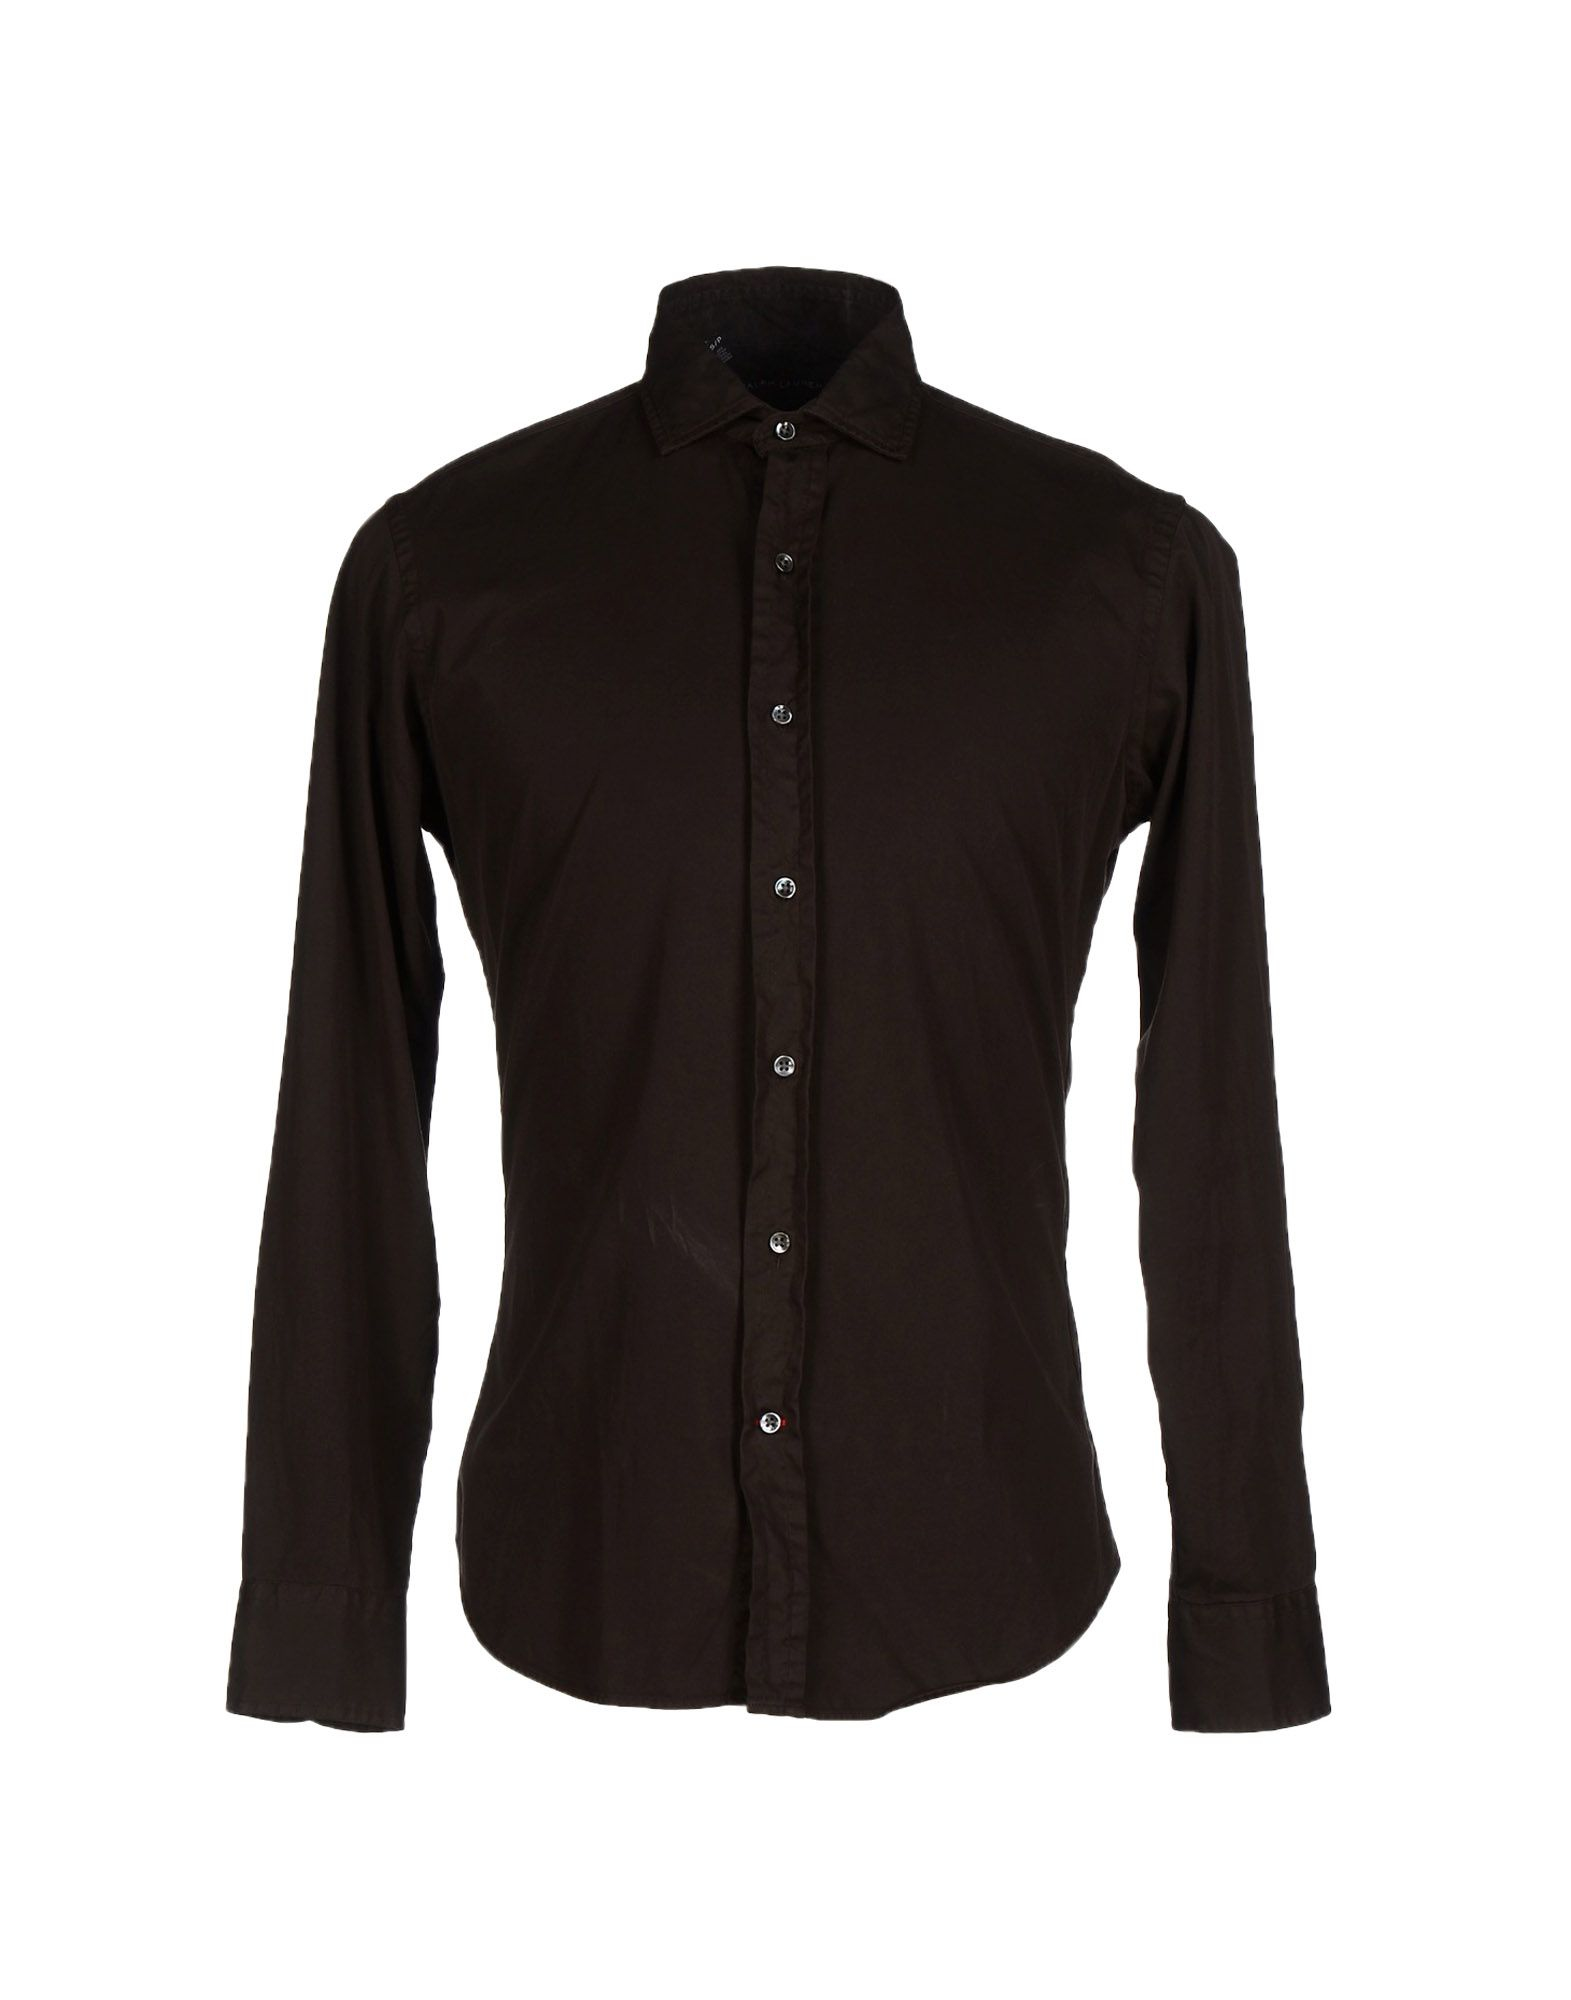 Ralph lauren black label shirt in brown for men lyst for Black brown mens shirts